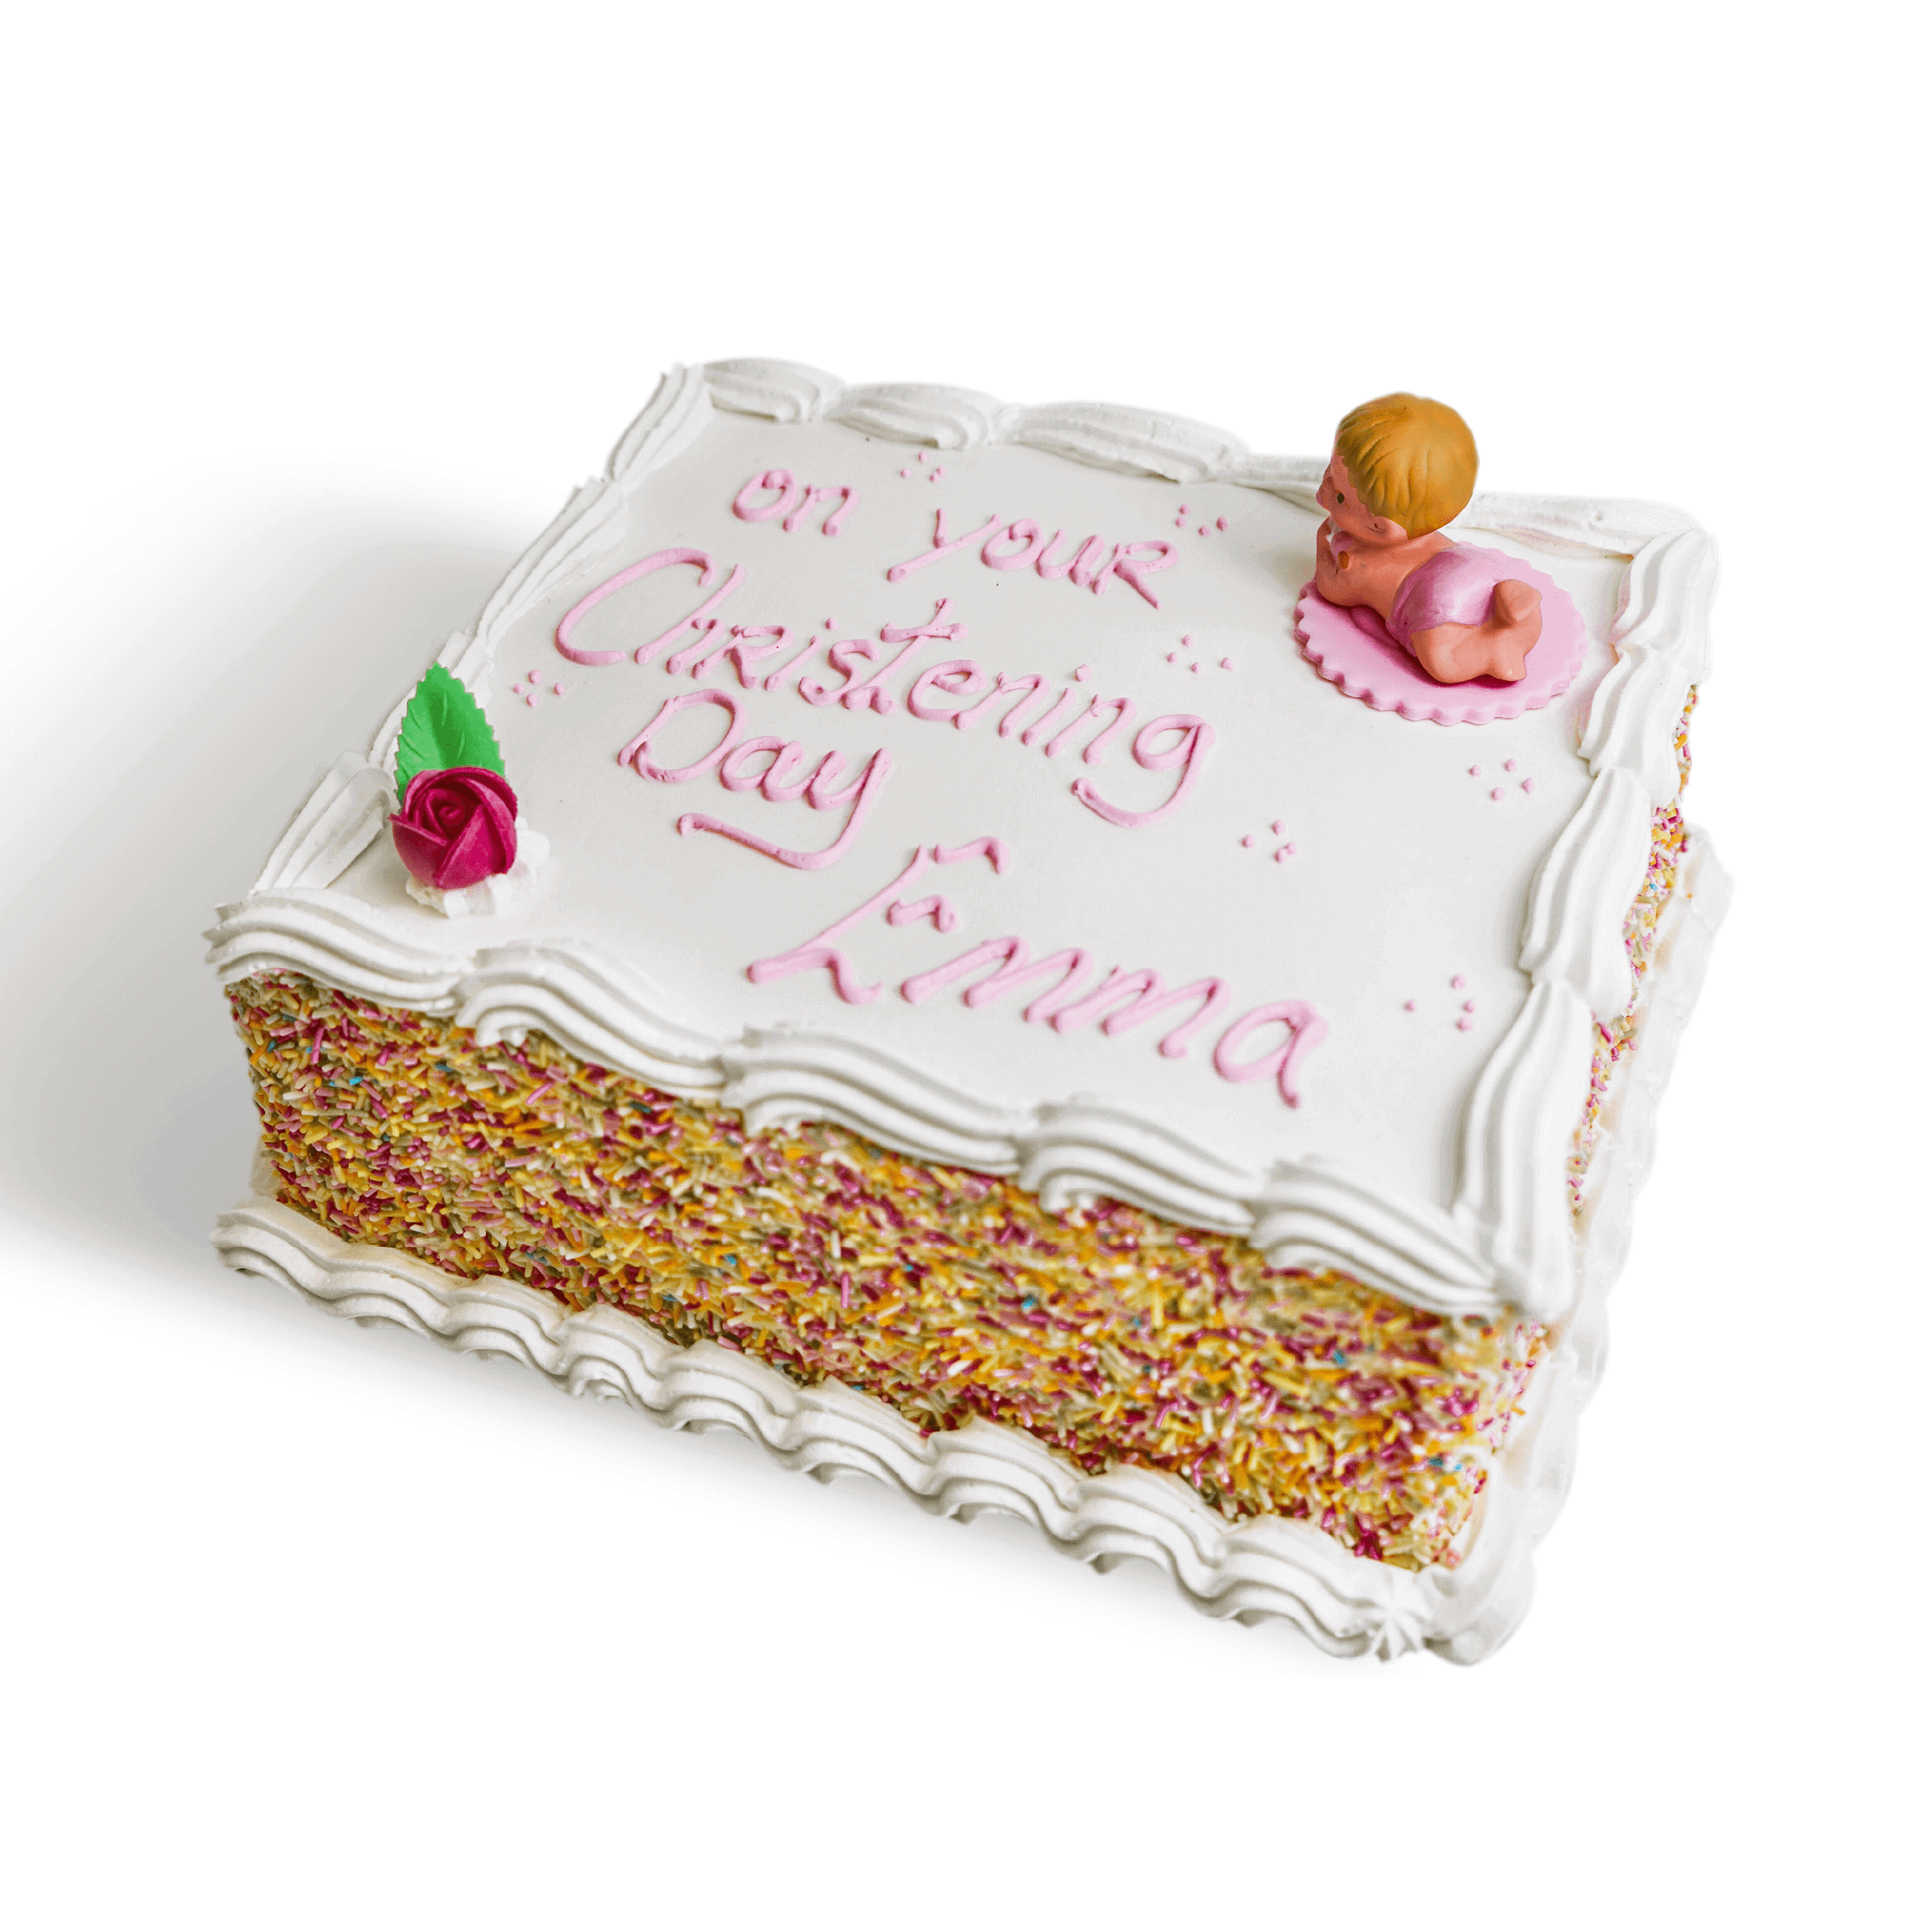 A white christening cake with sprinkles and pink decorations